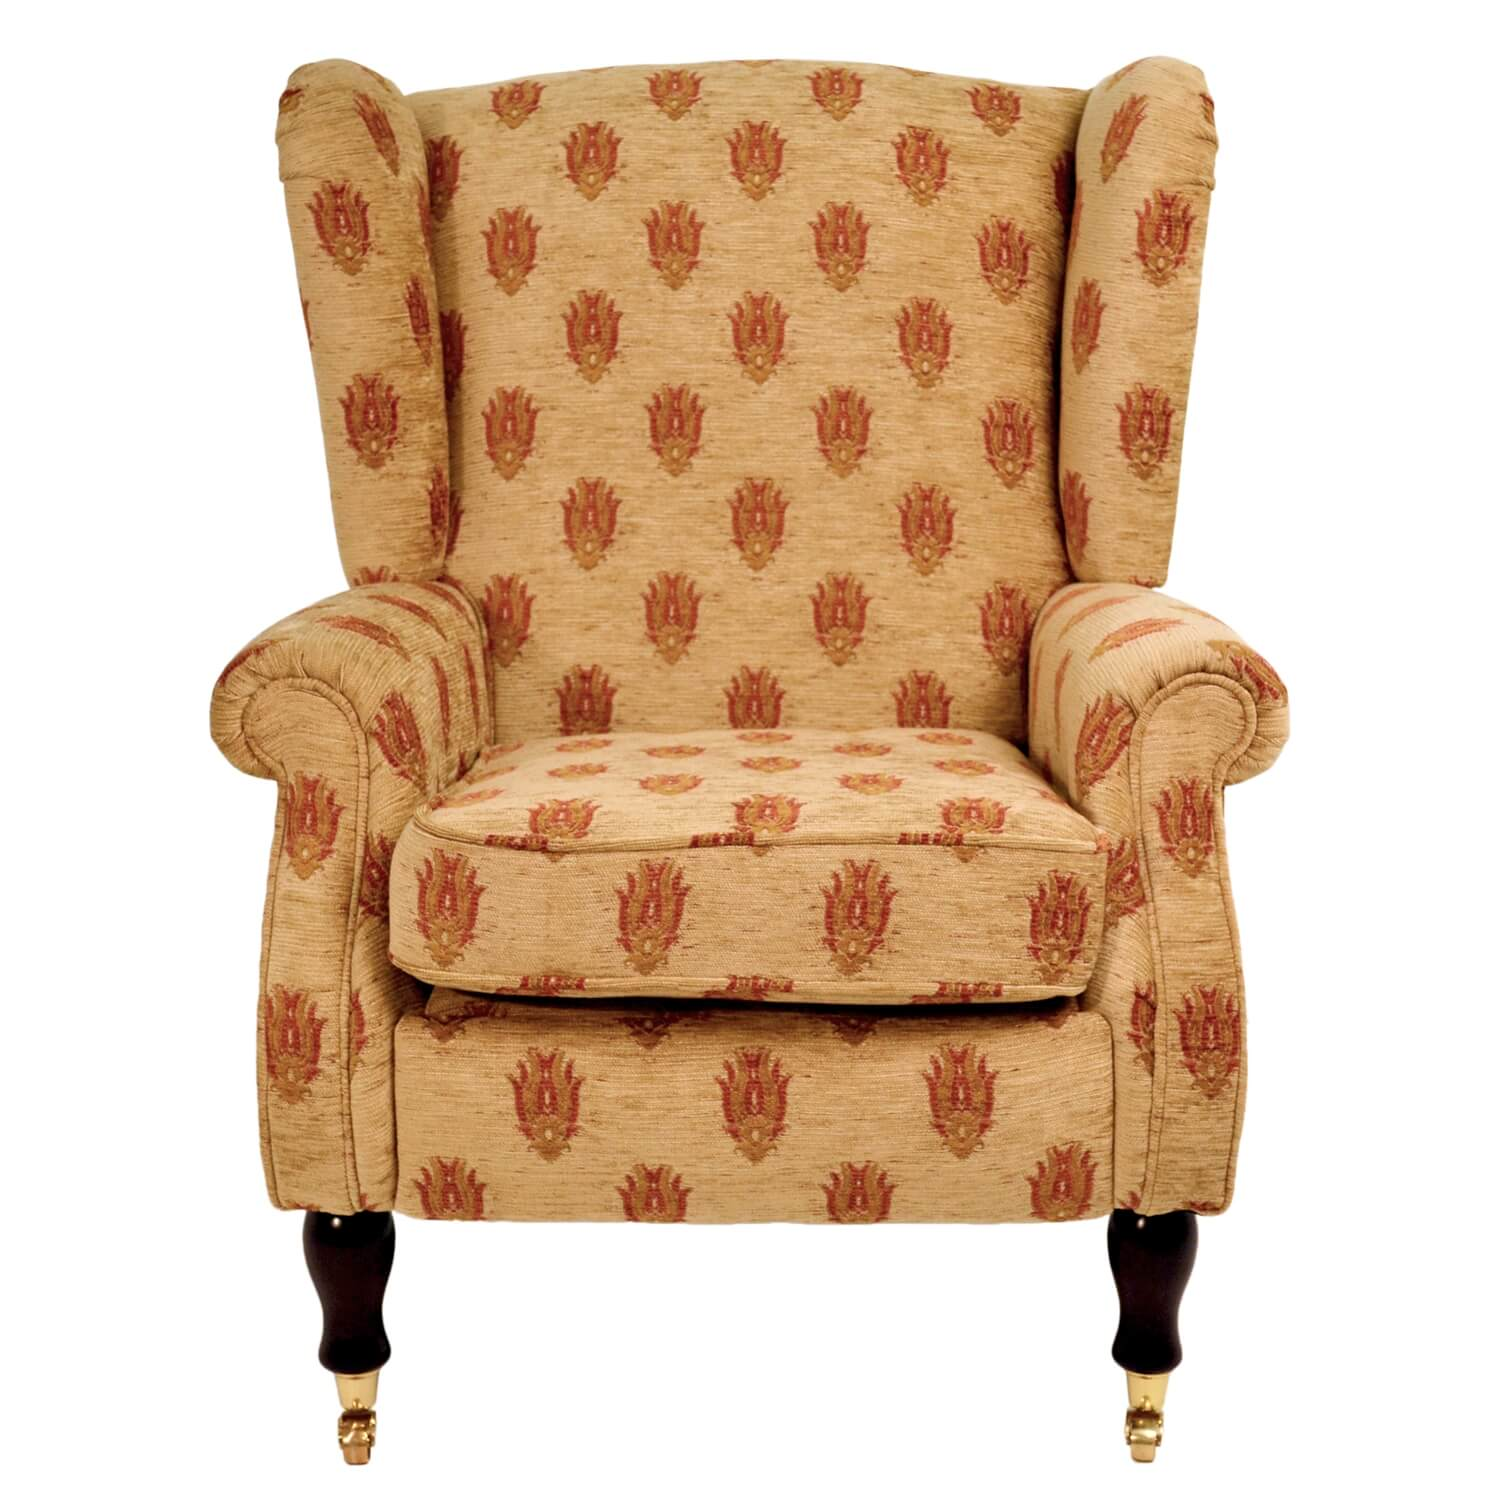 Image of Parker Knoll York Wing Fabric Chair